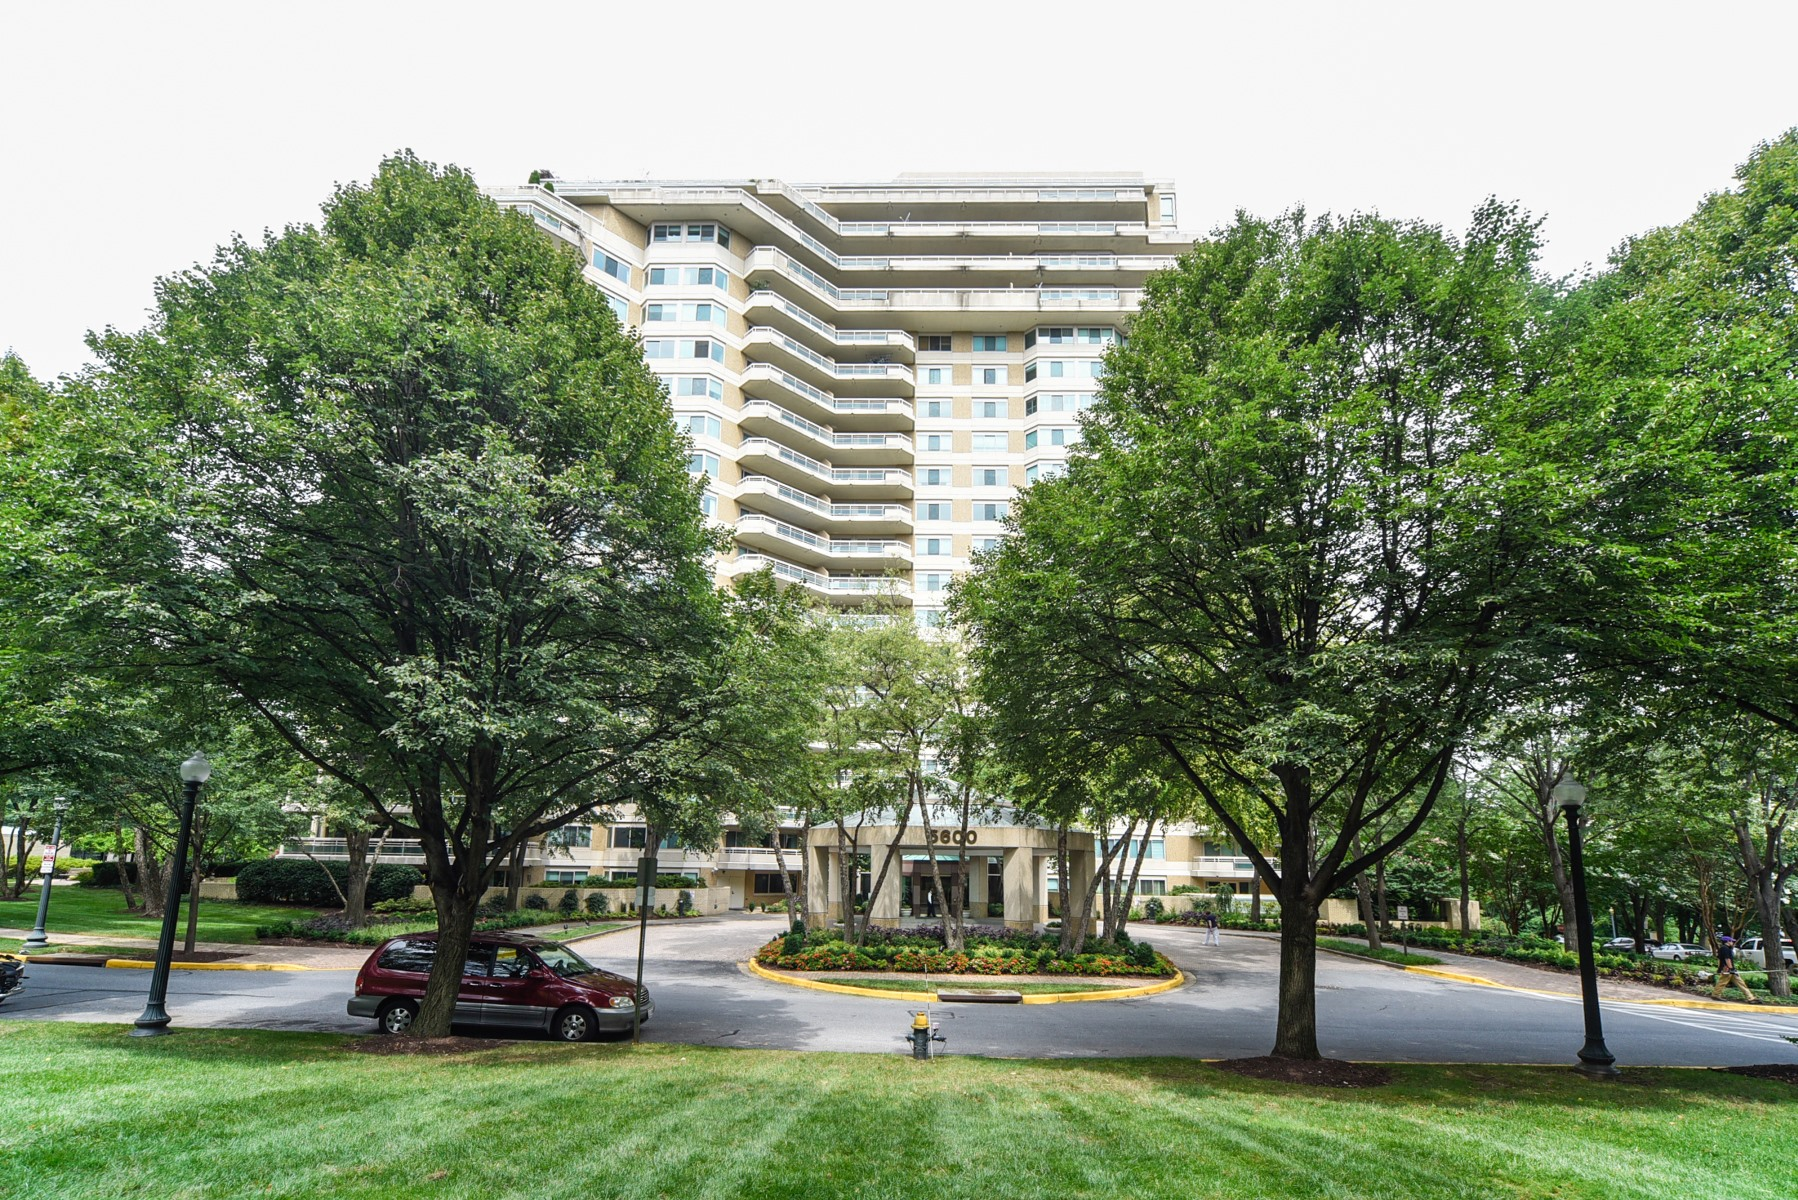 Condominium for Sale at 5600 Wisconsin Avenue 1-1604, Chevy Chase 5600 Wisconsin Ave 1-1604 Chevy Chase, Maryland 20815 United States